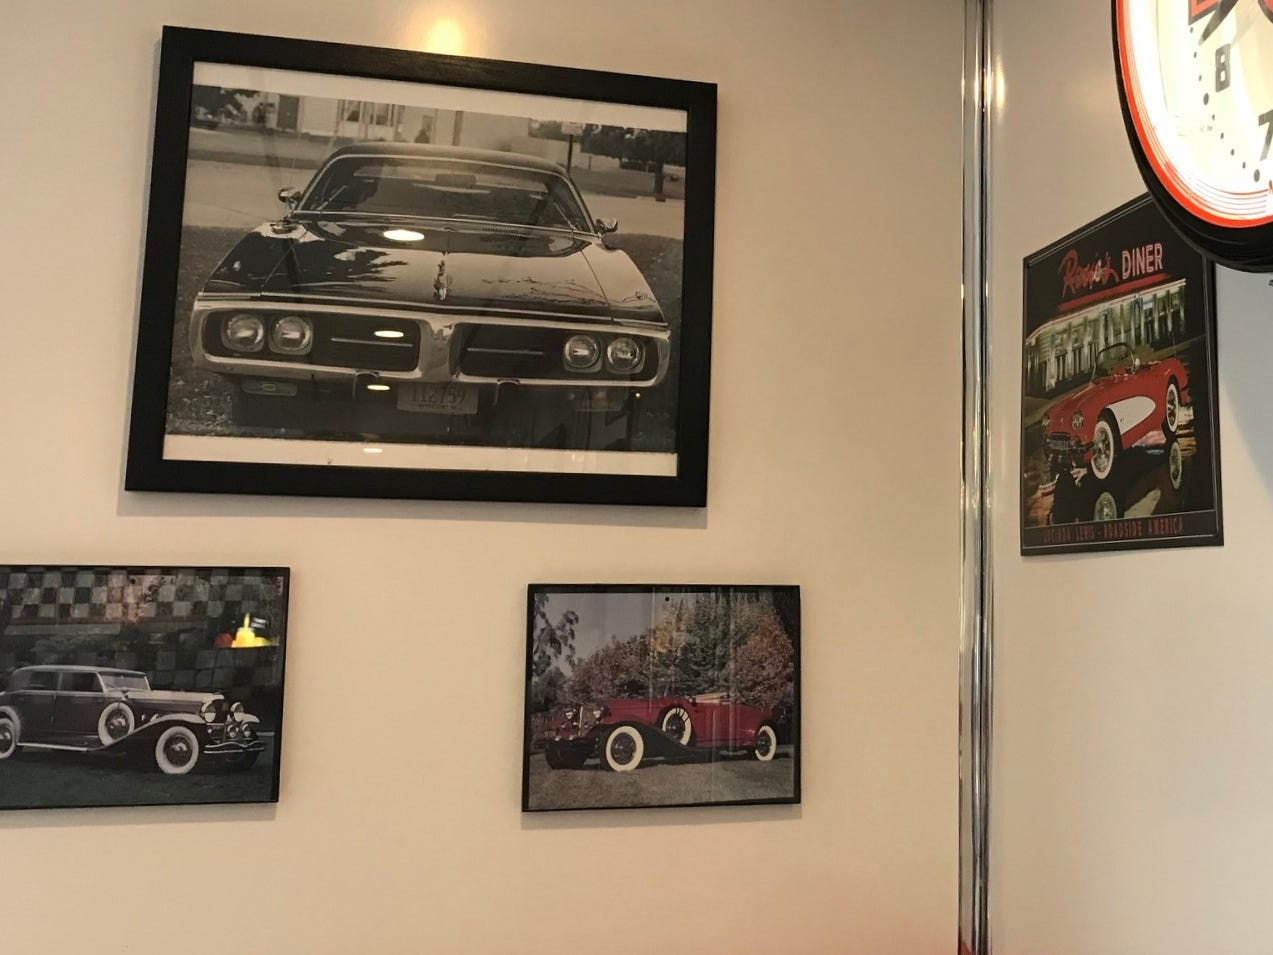 Throughout Harry's Diner are mementos of the 50s like a photo of Ljatifovski's 1973 Dodge Charger